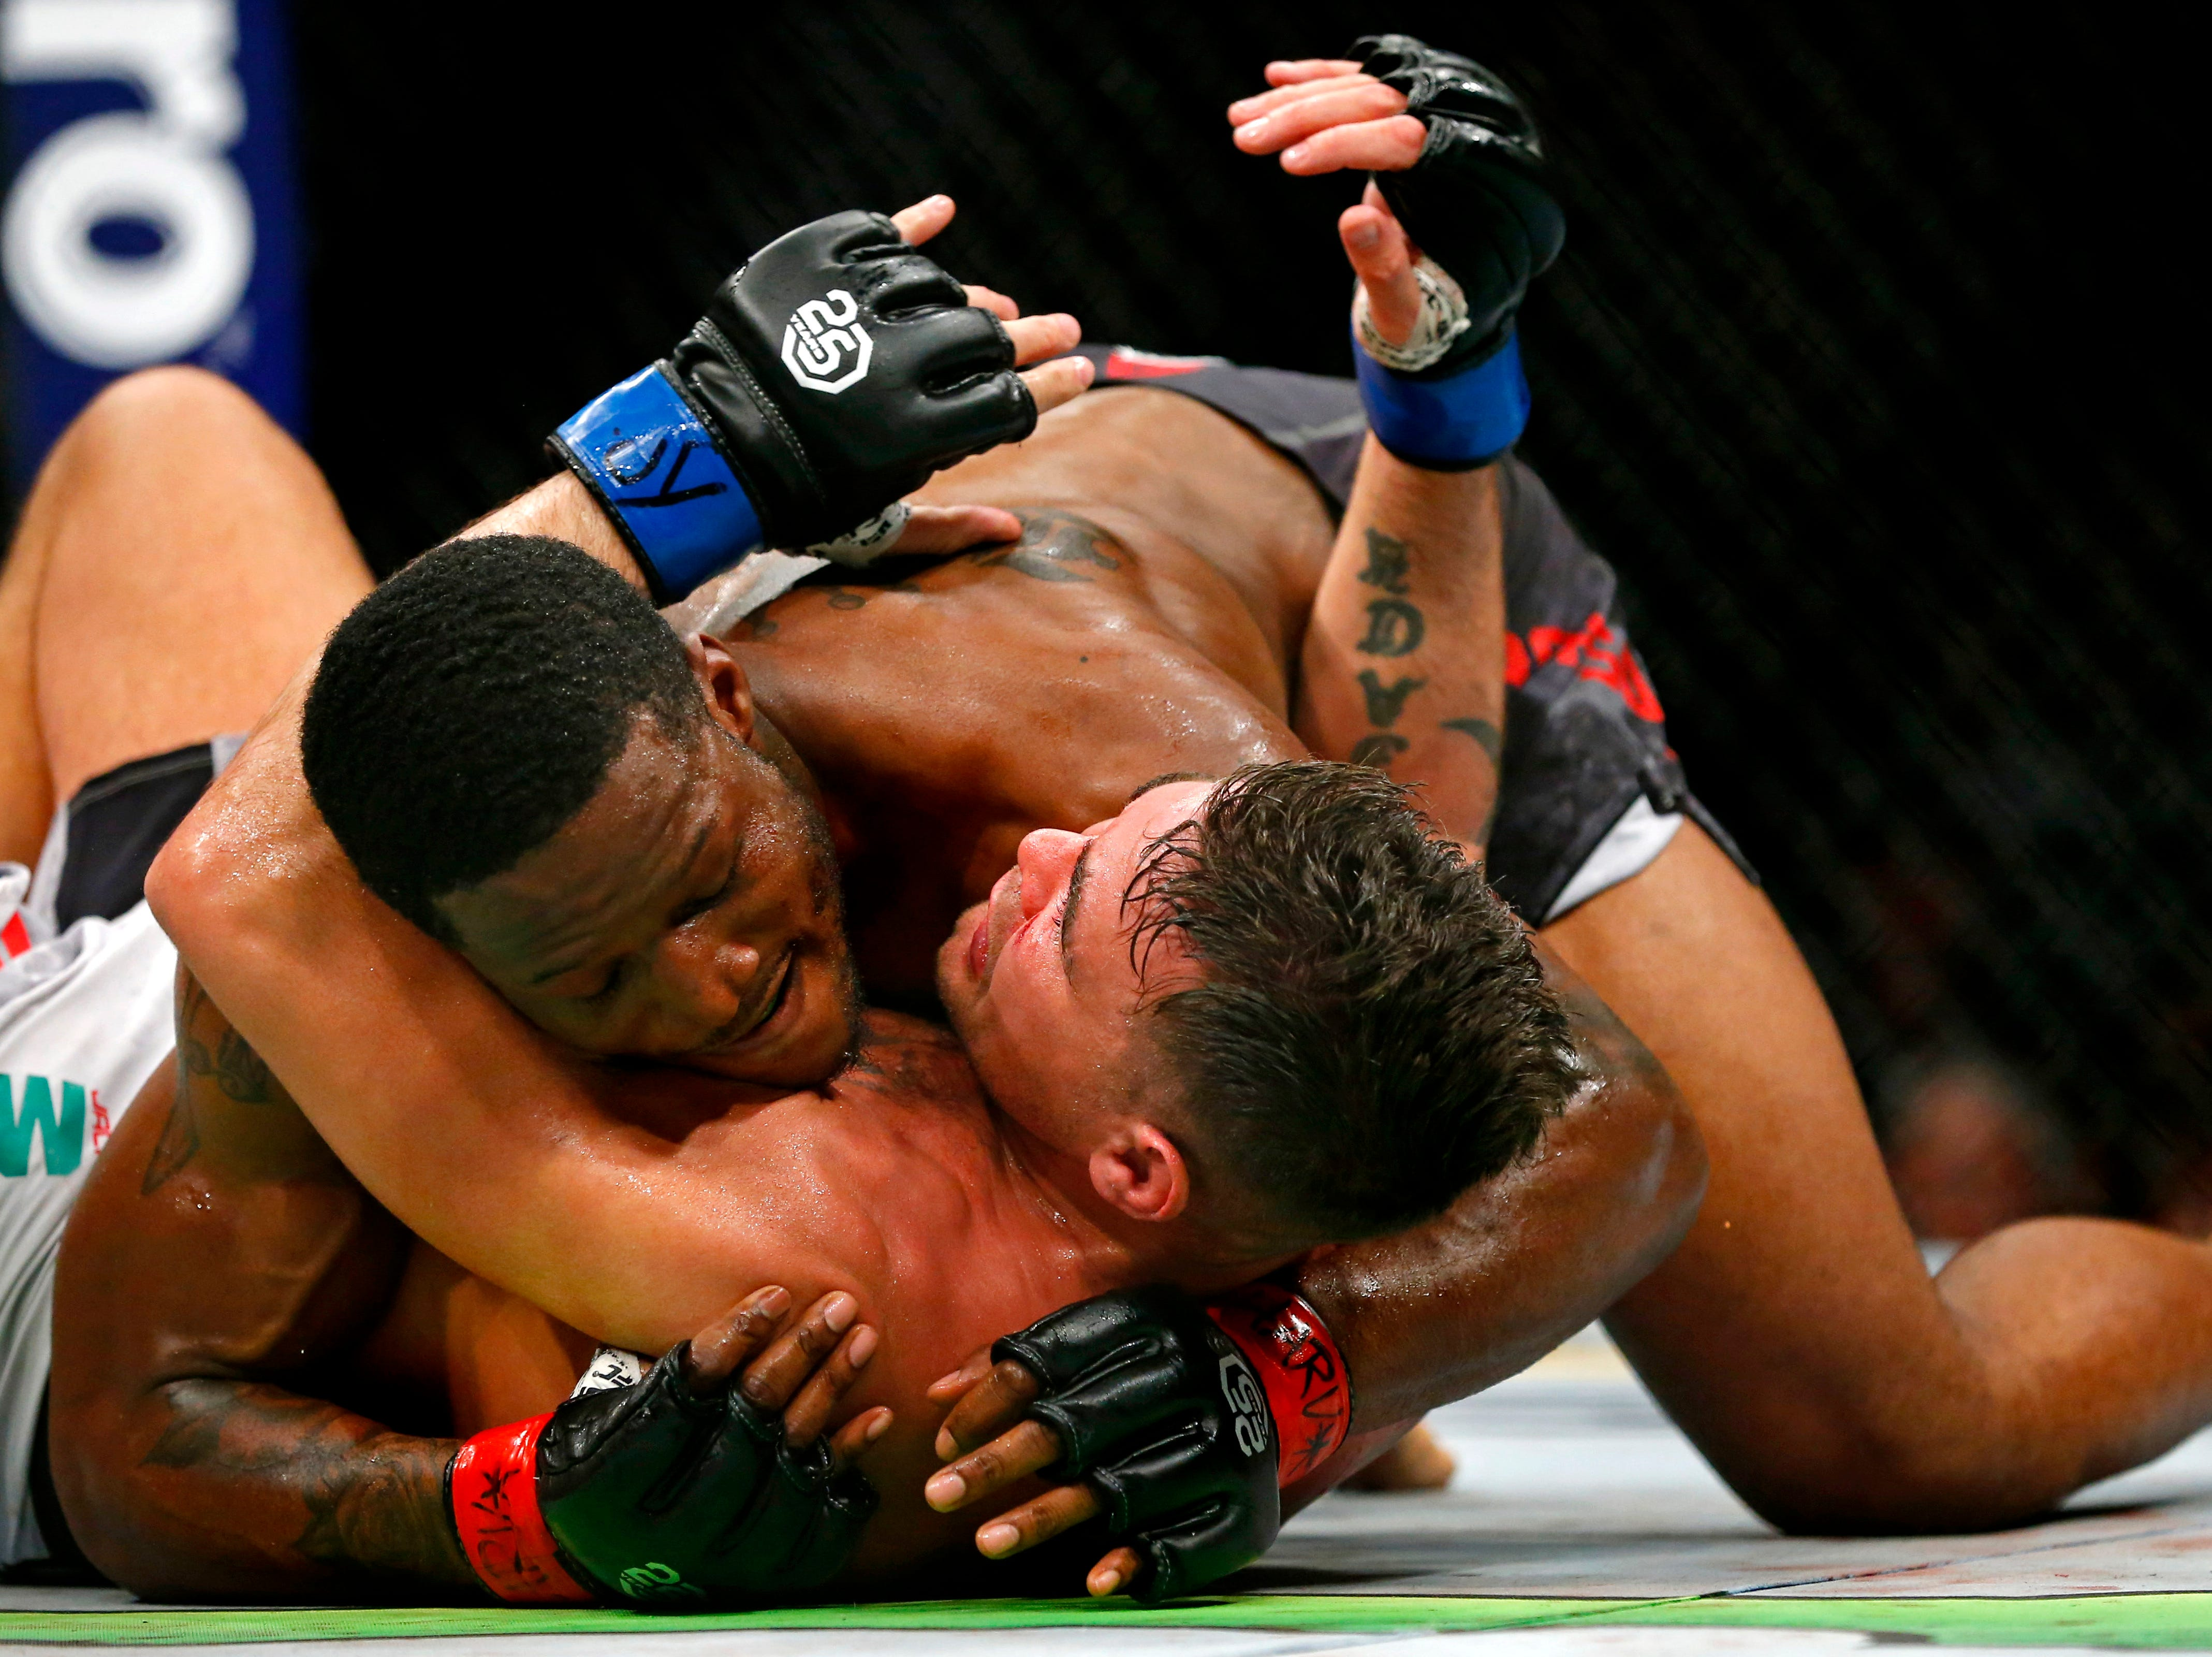 Karl Roberson (red gloves) fights Jack Marshman (blue gloves) during UFC 230 at Madison Square Garden.